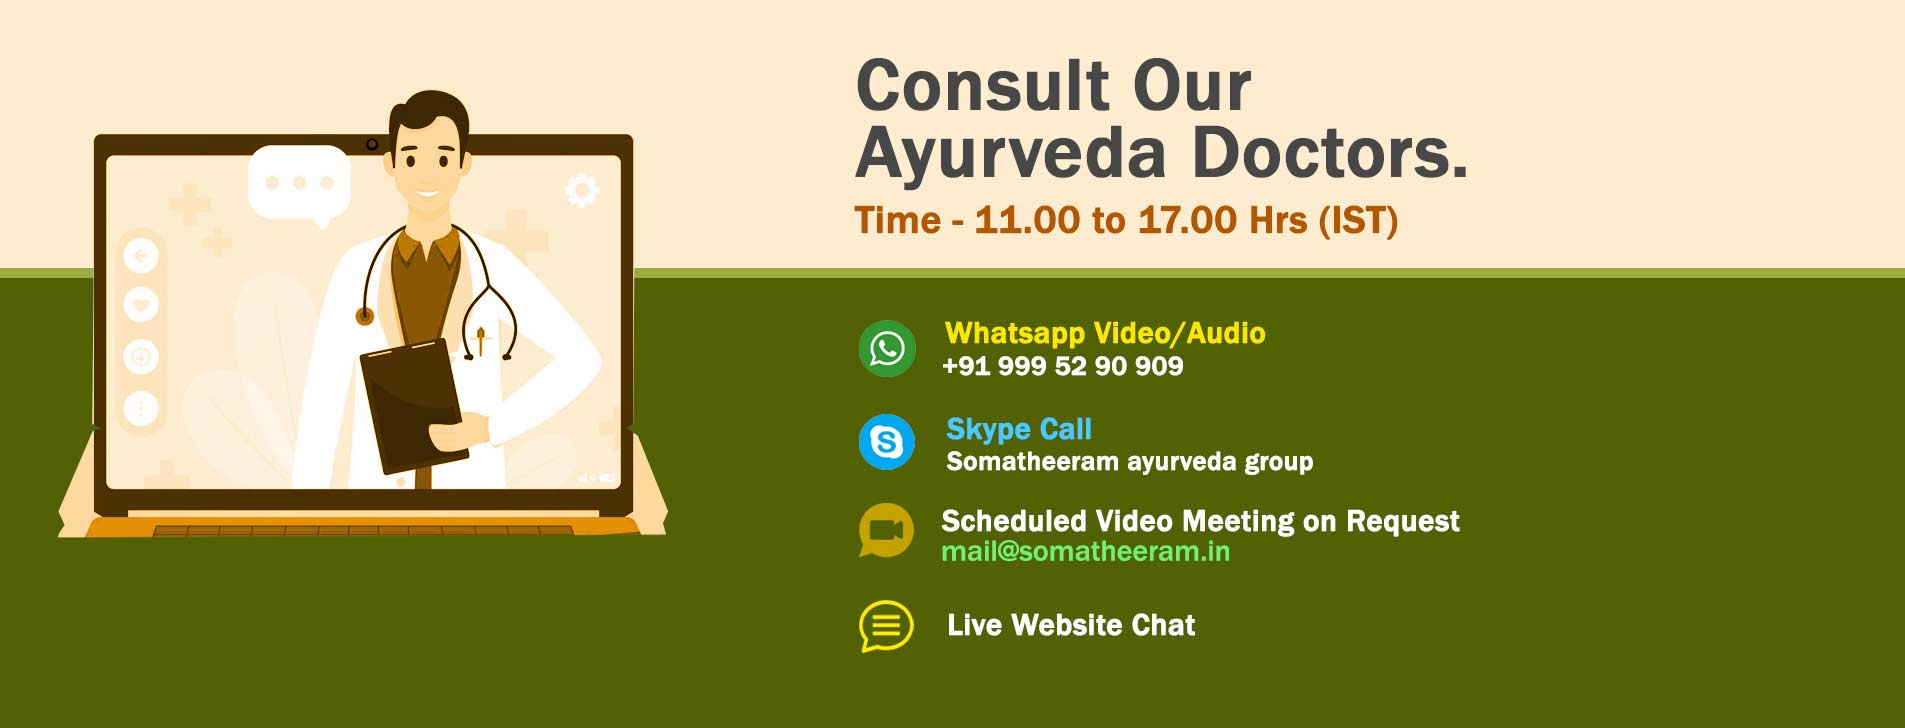 Consult Our